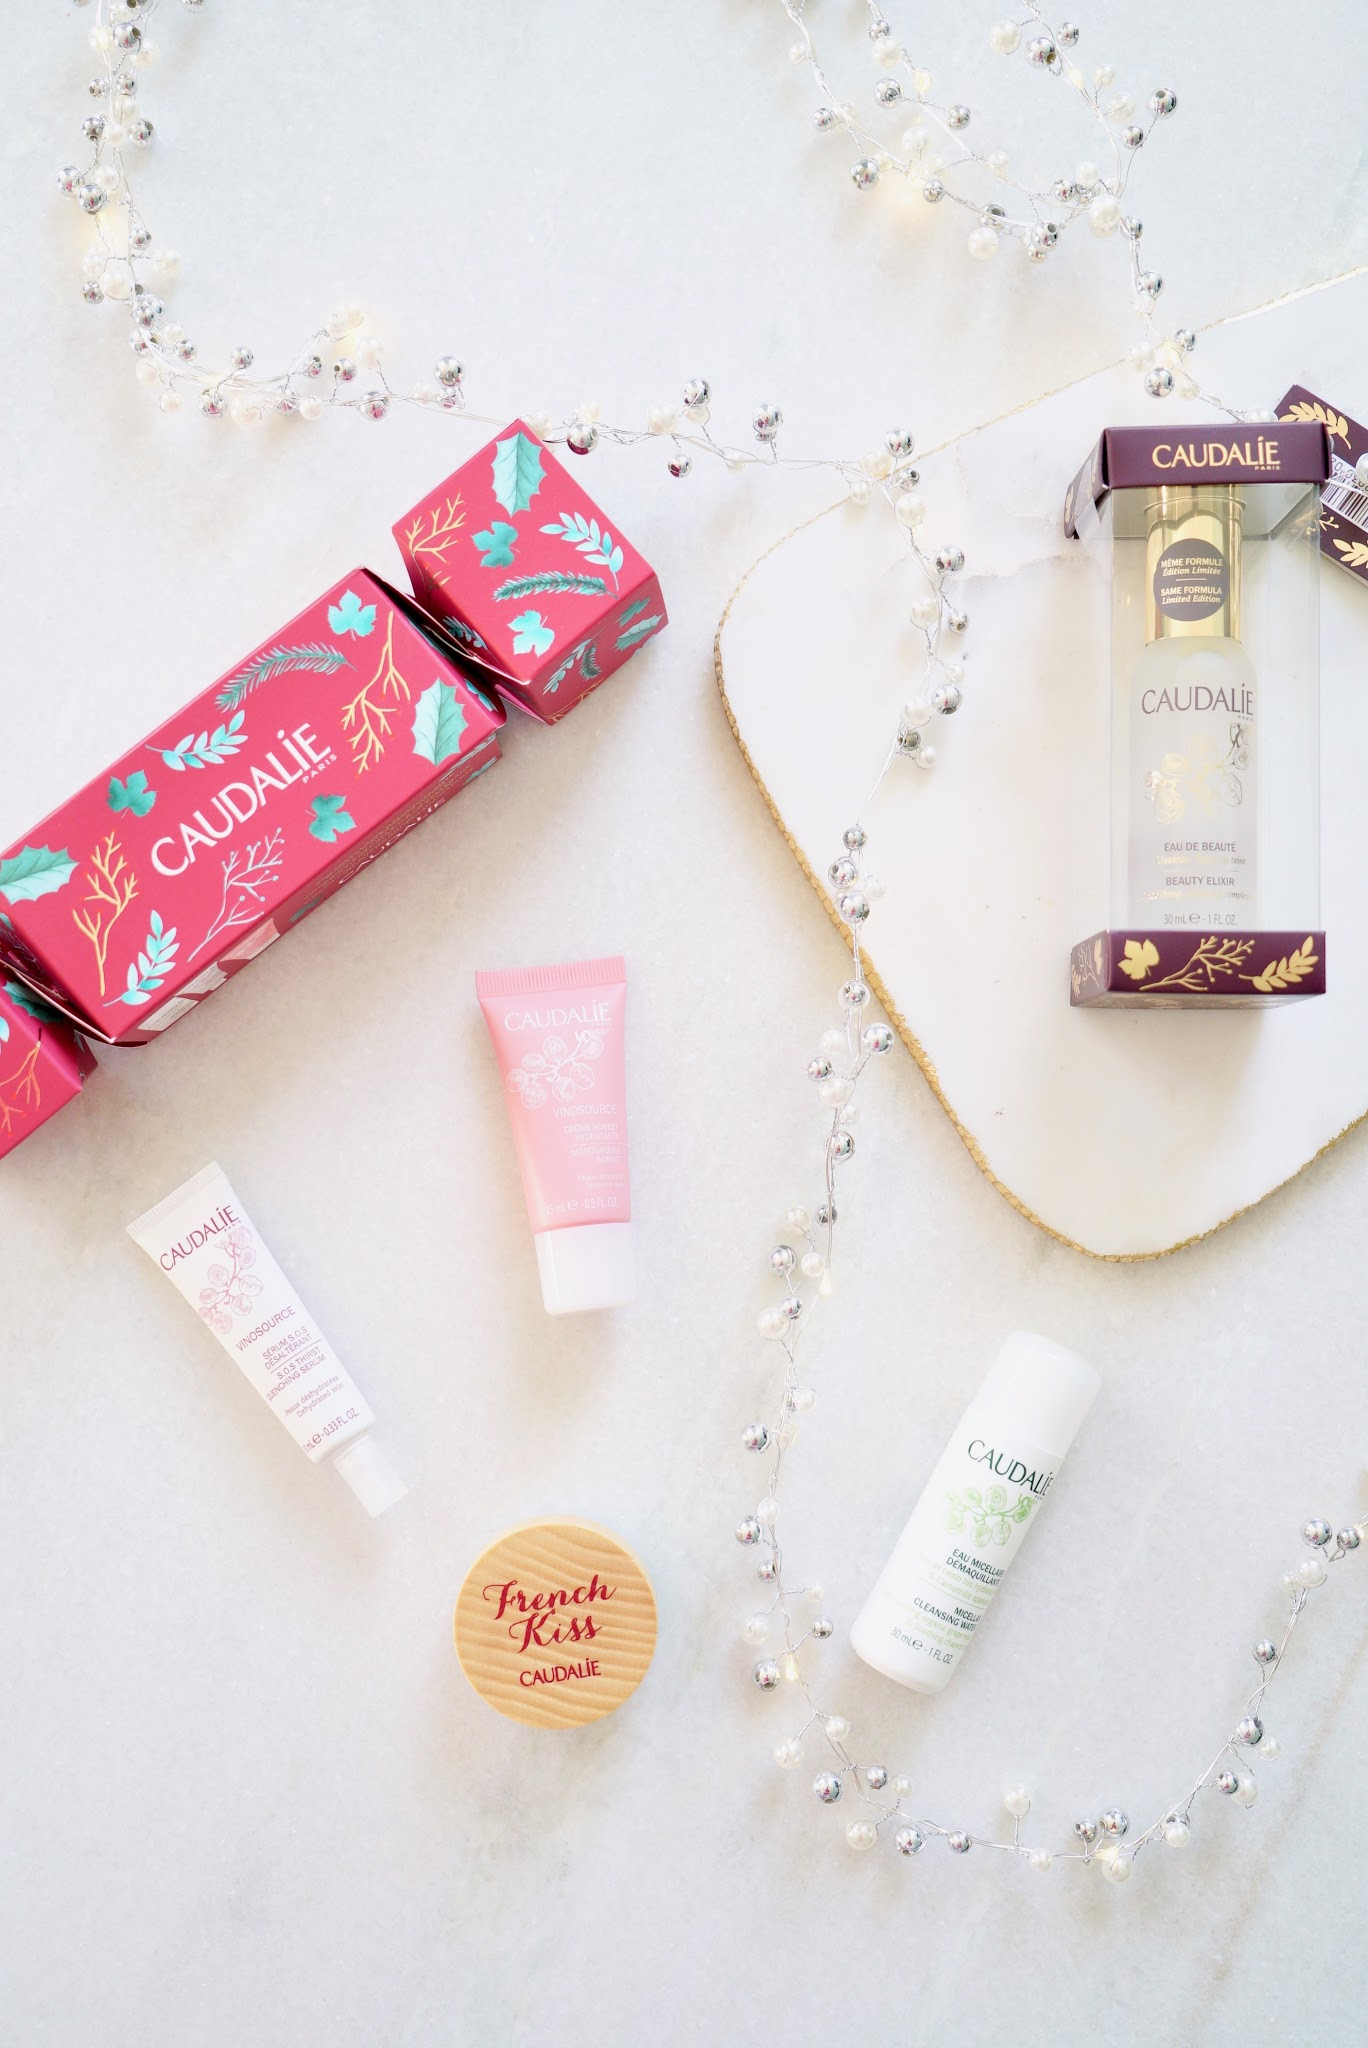 STOCKING FILLERS IDEAS FROM CAUDALIE